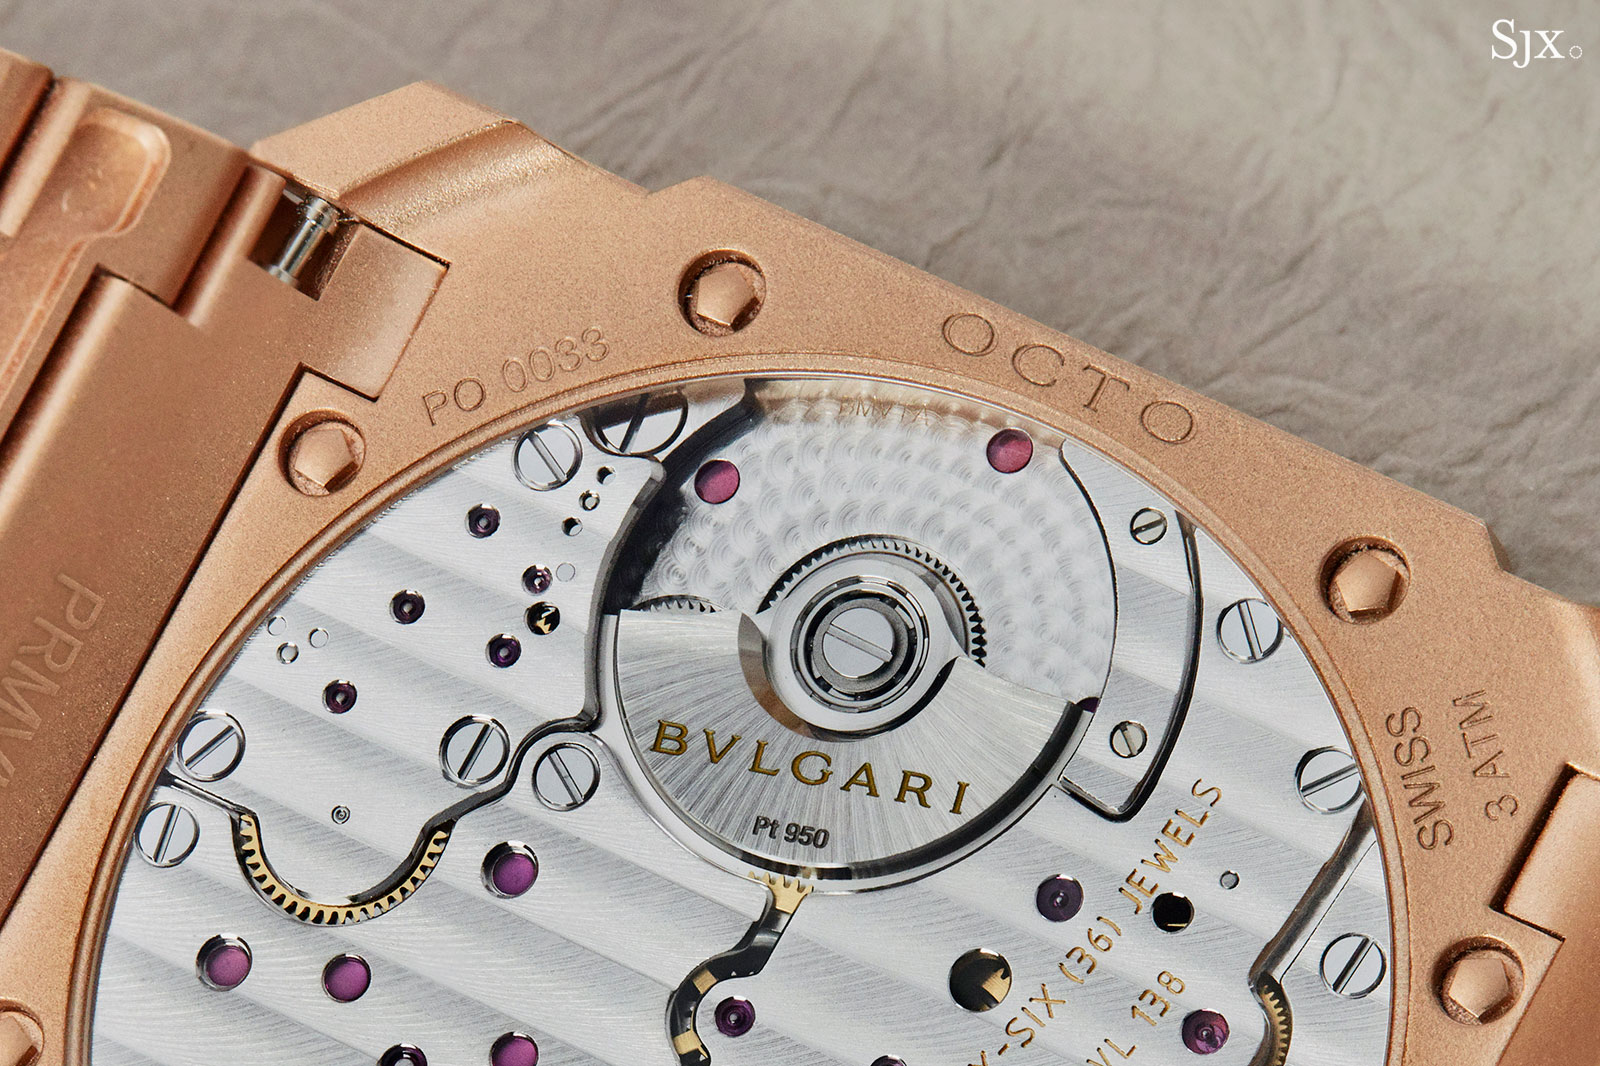 Bulgari Octo Finissimo Automatic rose gold 3